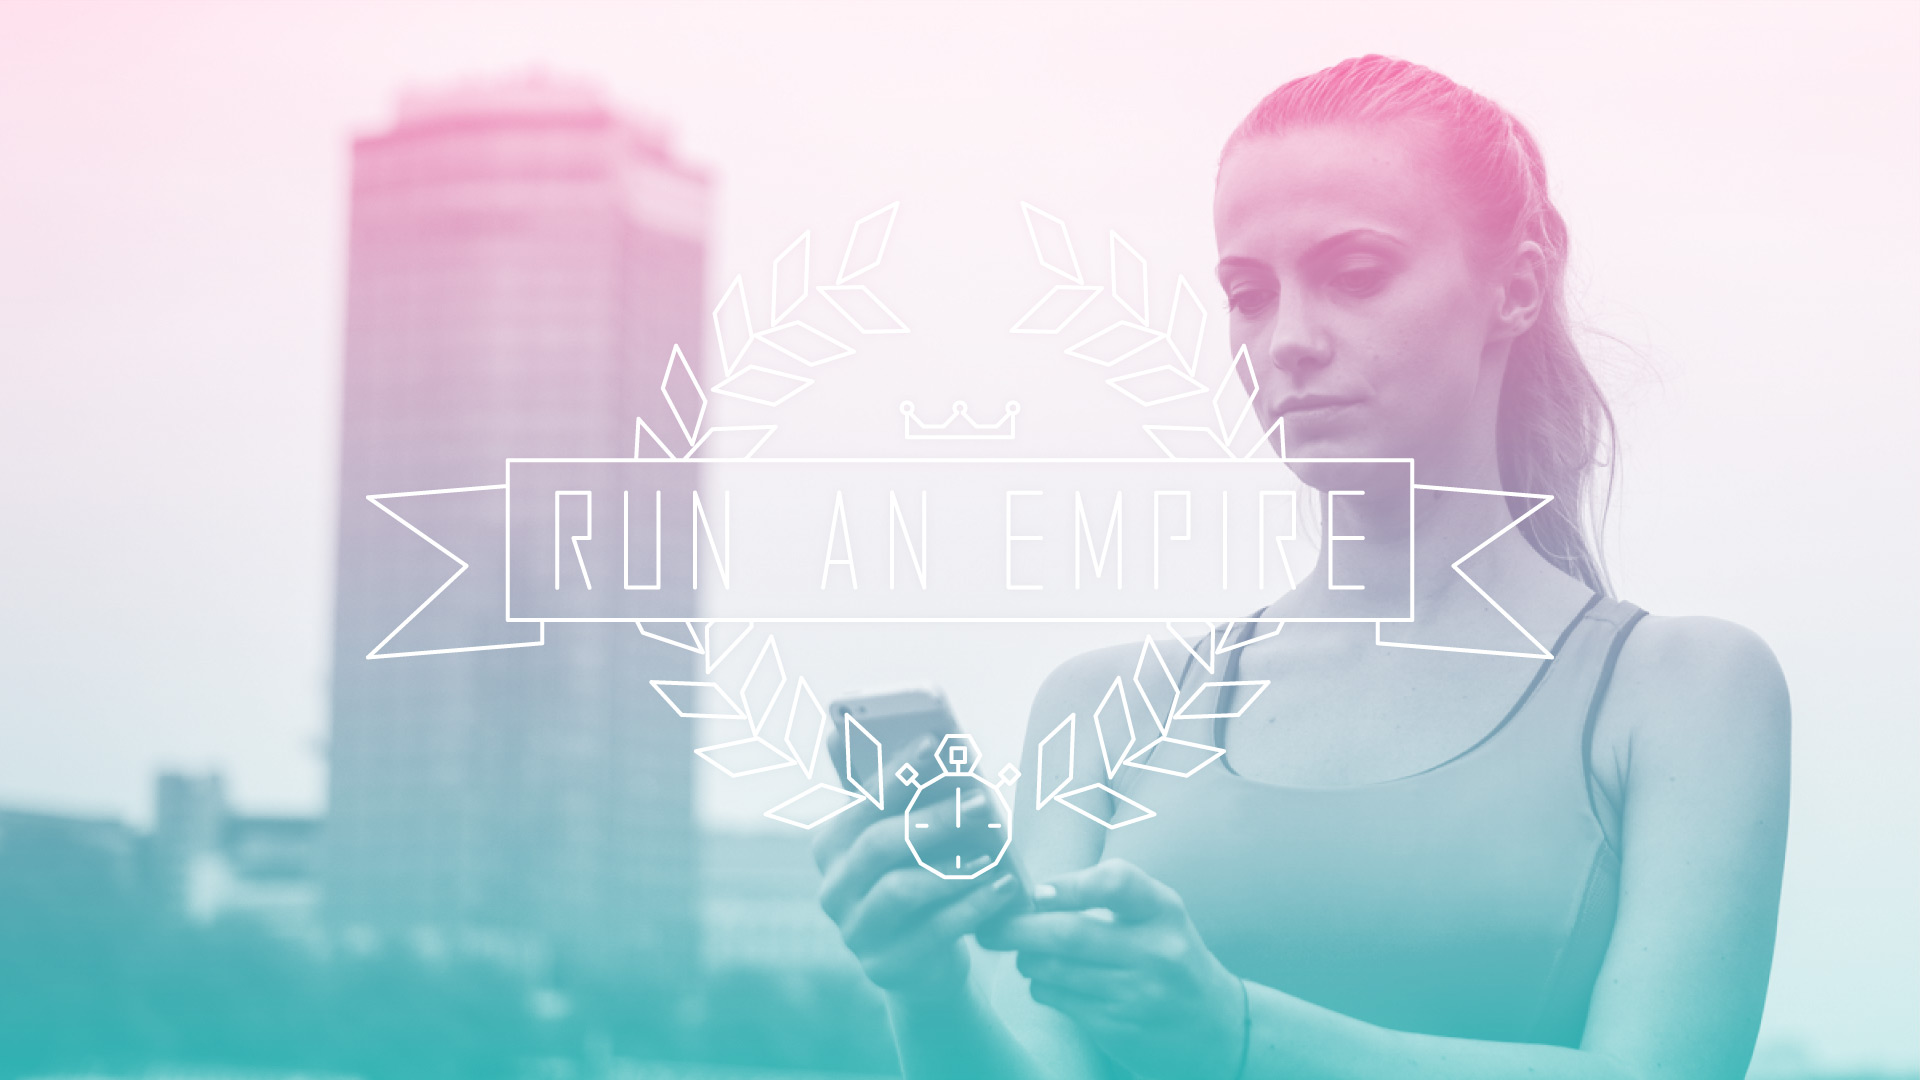 Run an Empire header